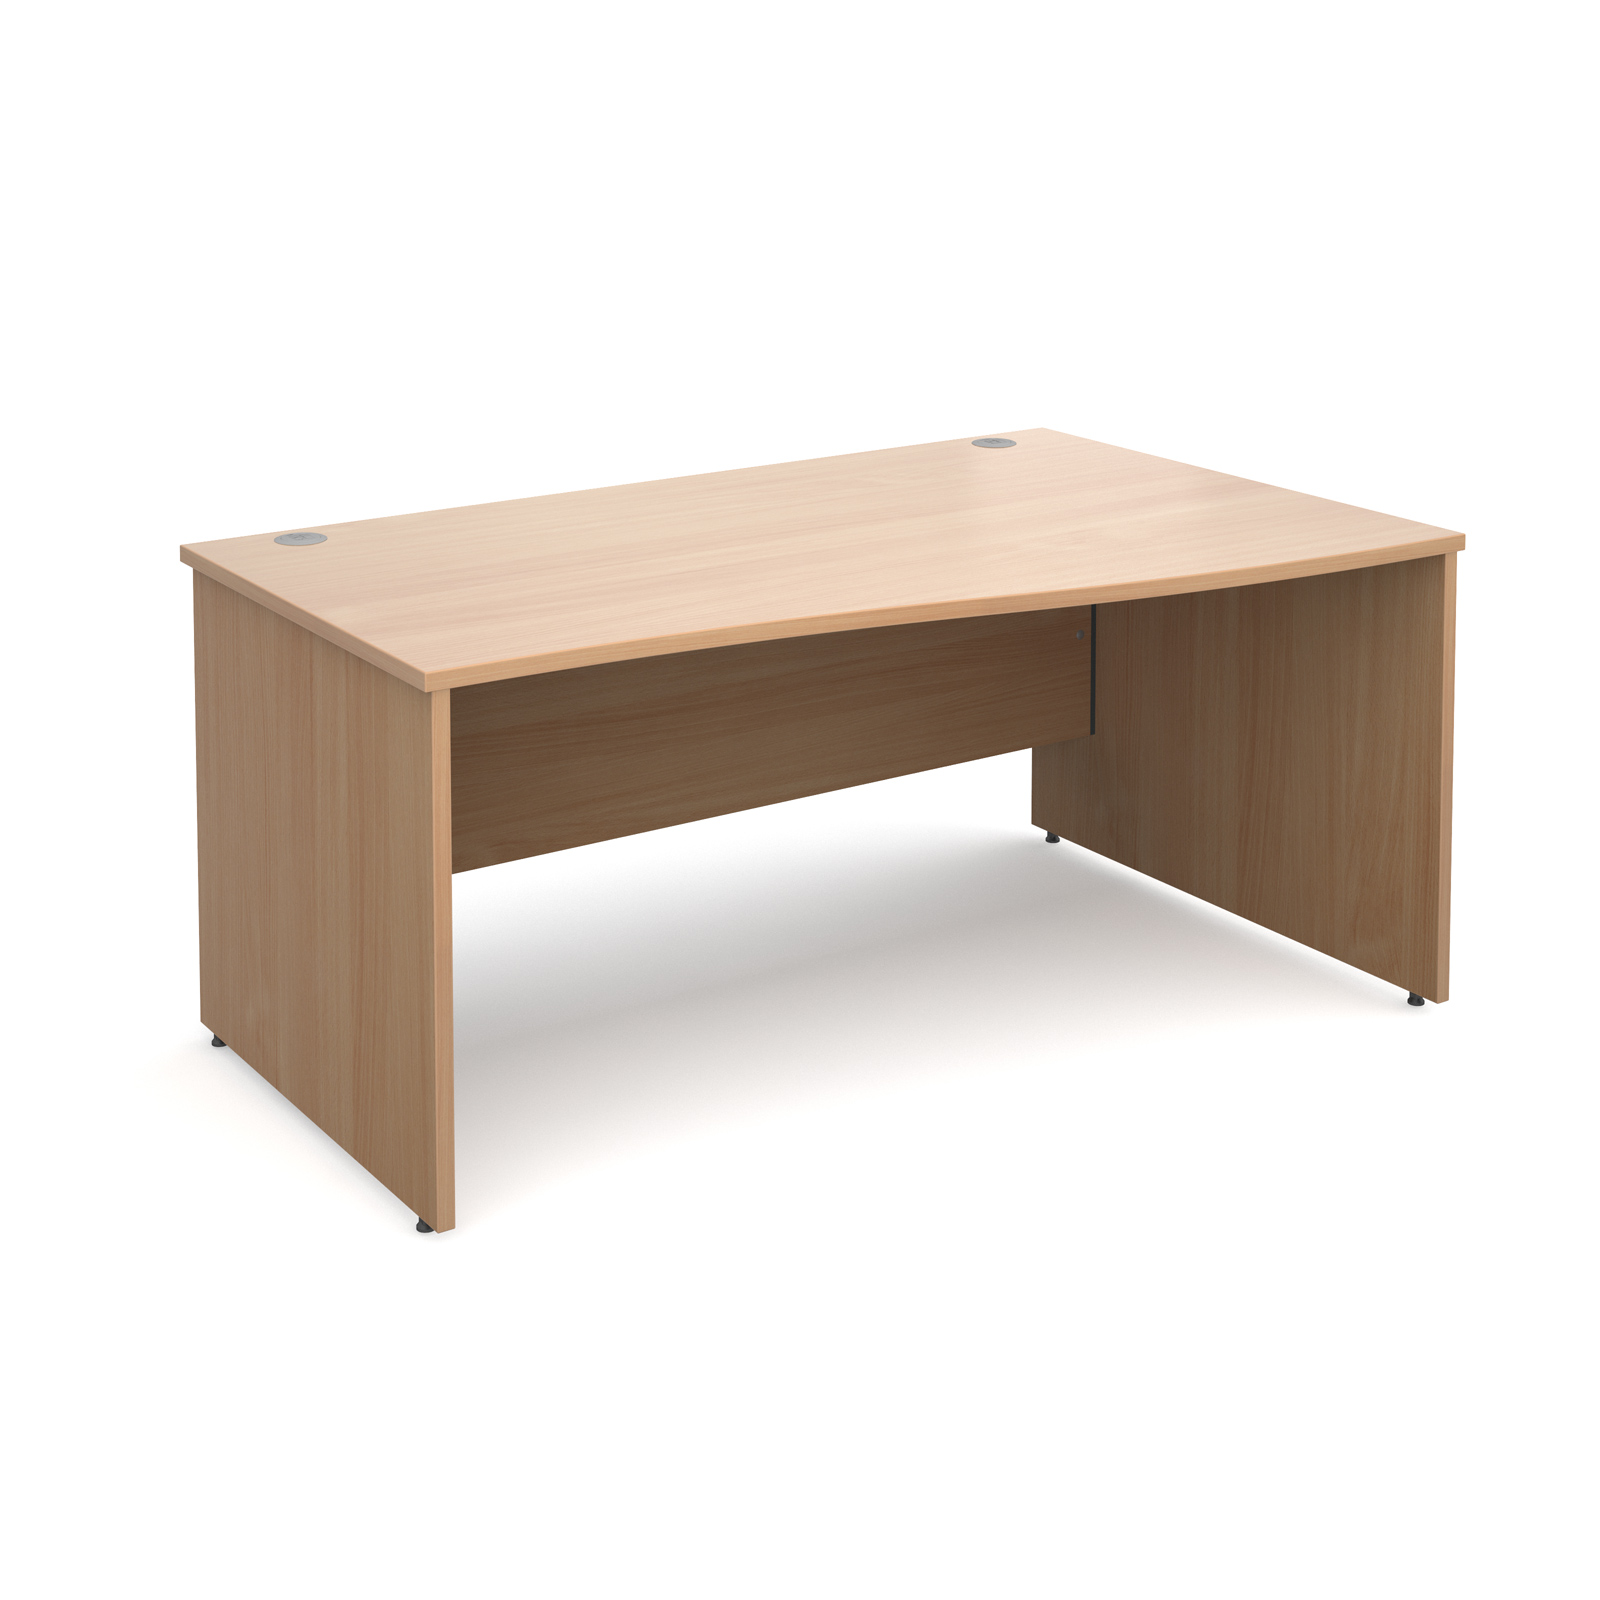 Maestro 25 PL right hand wave desk 1600mm - beech panel leg design